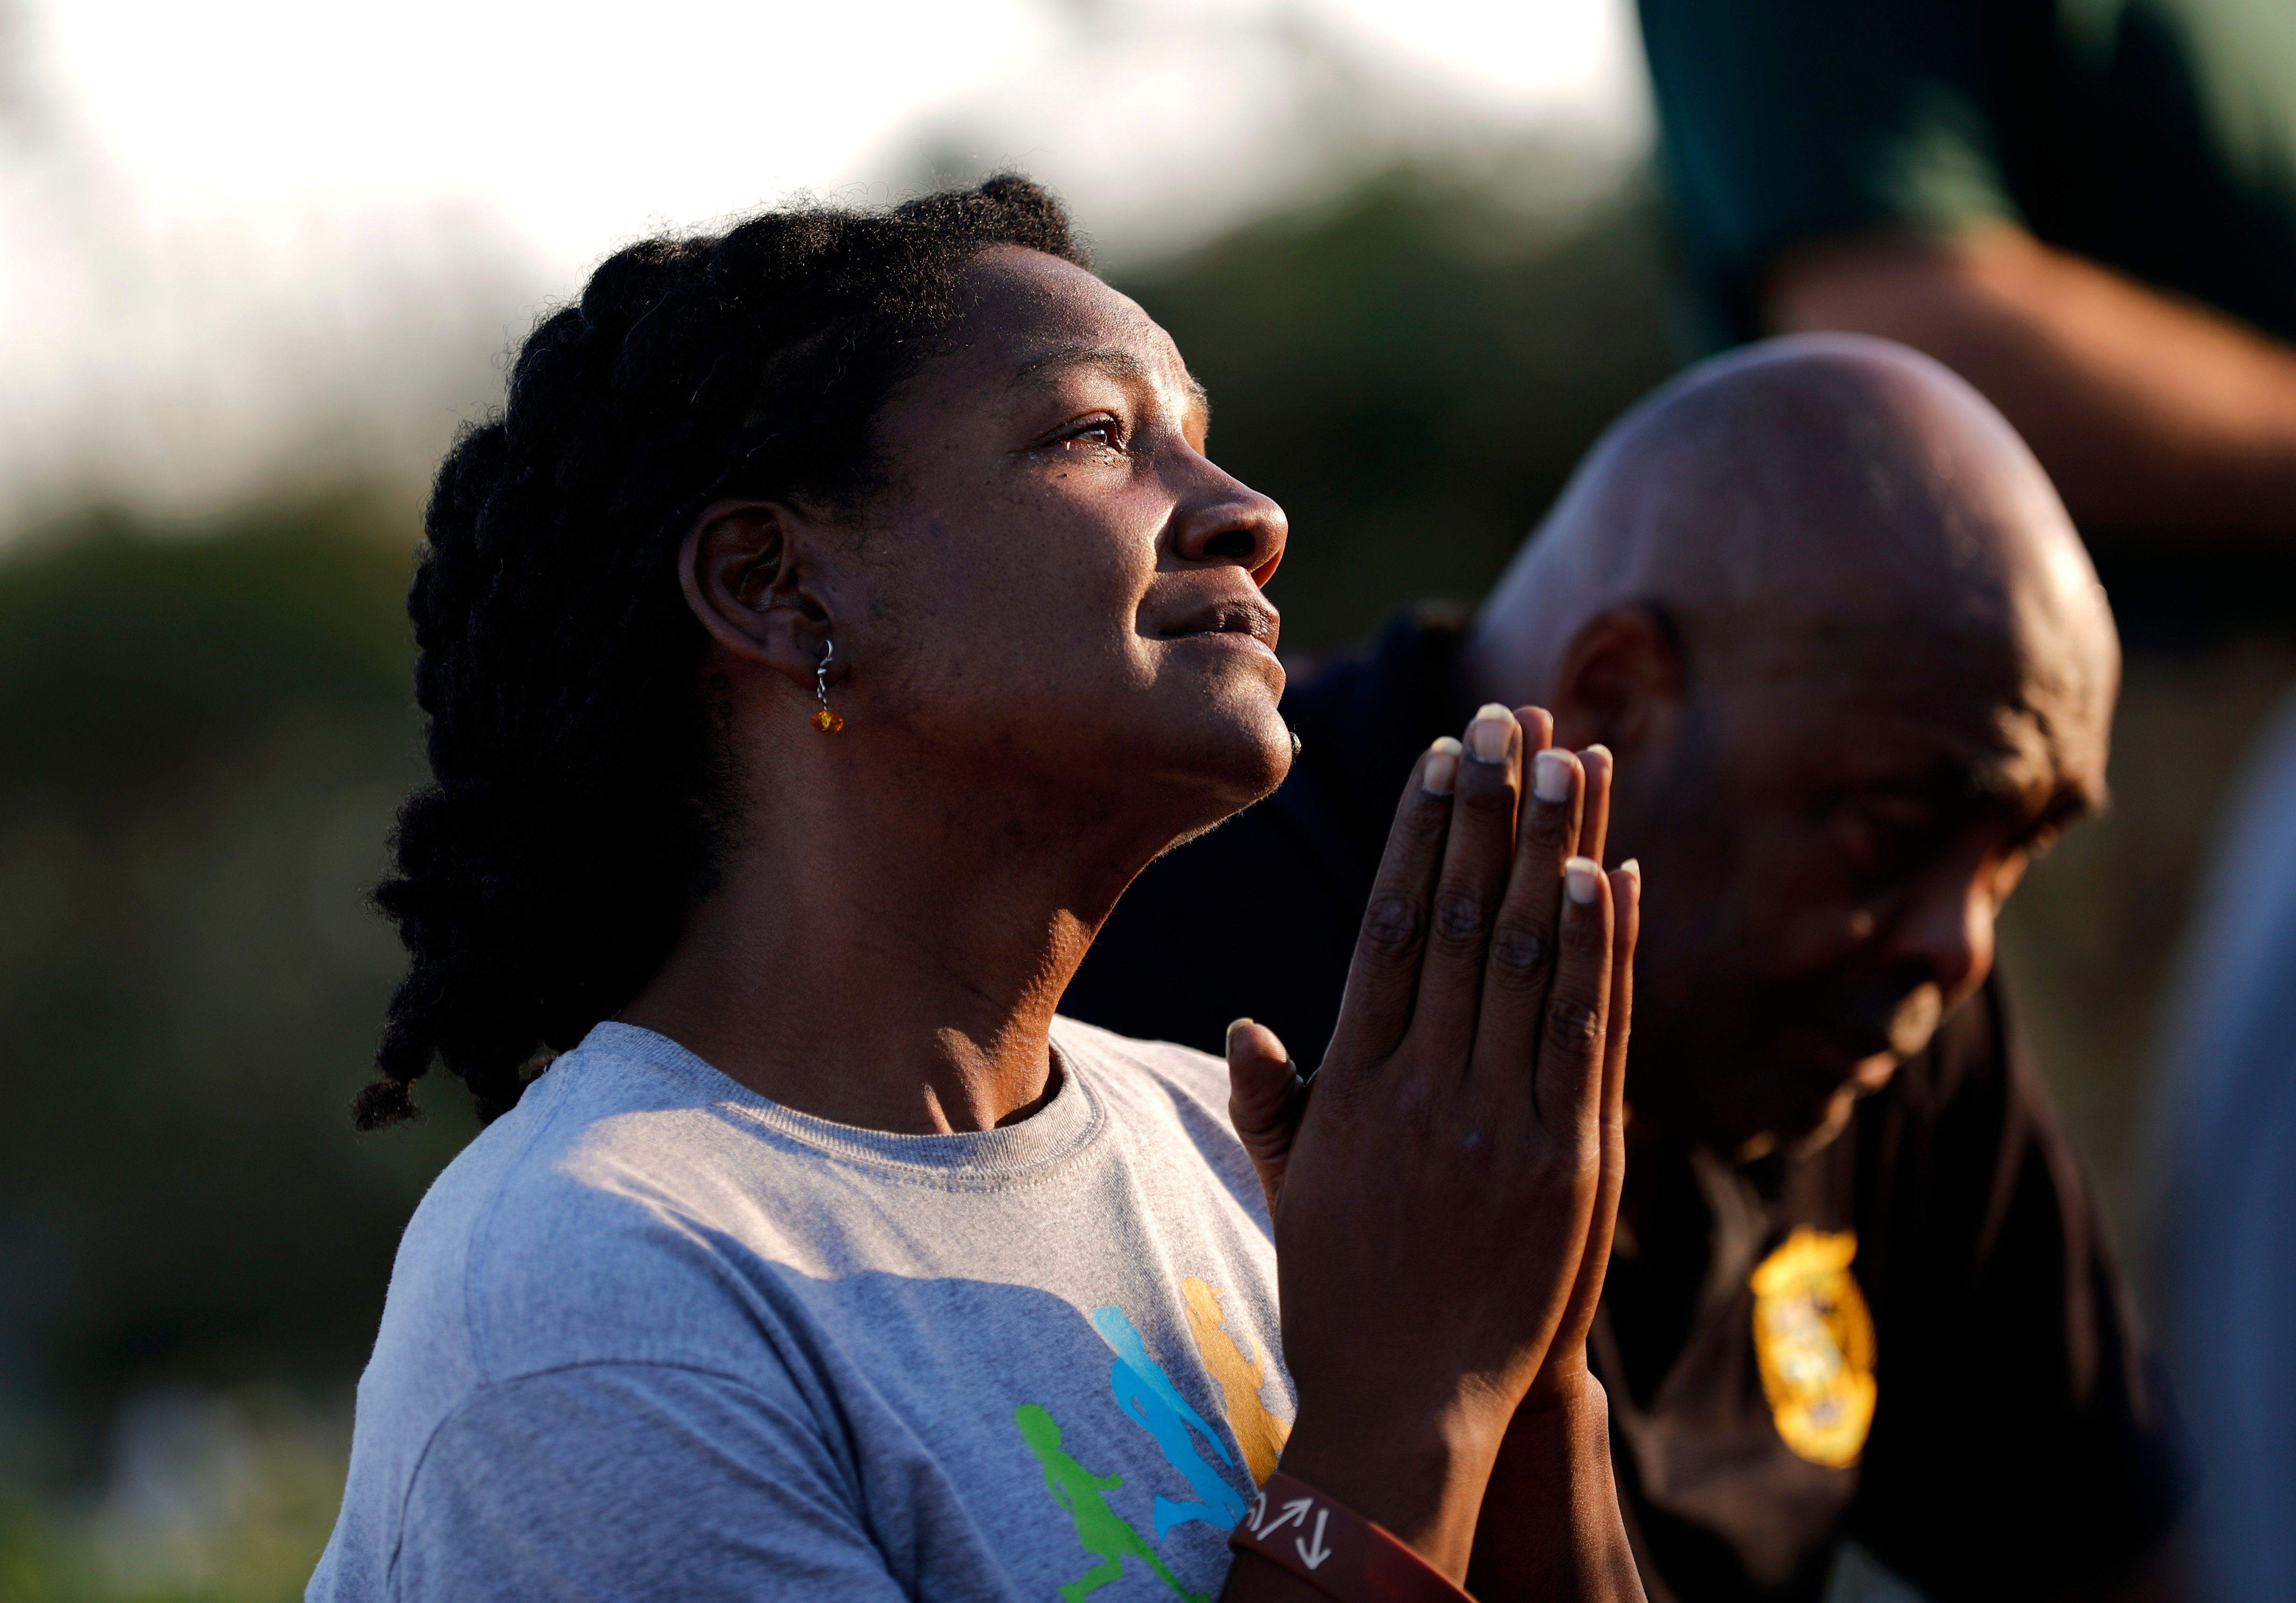 Lora McCalister-Cruel prays during Mass which was moved outdoors due to damage from Hurricane Michael inside Saint Dominic Catholic Church in Panama City, Fla., Saturday, Oct. 13, 2018. (AP Photo/David Goldman)